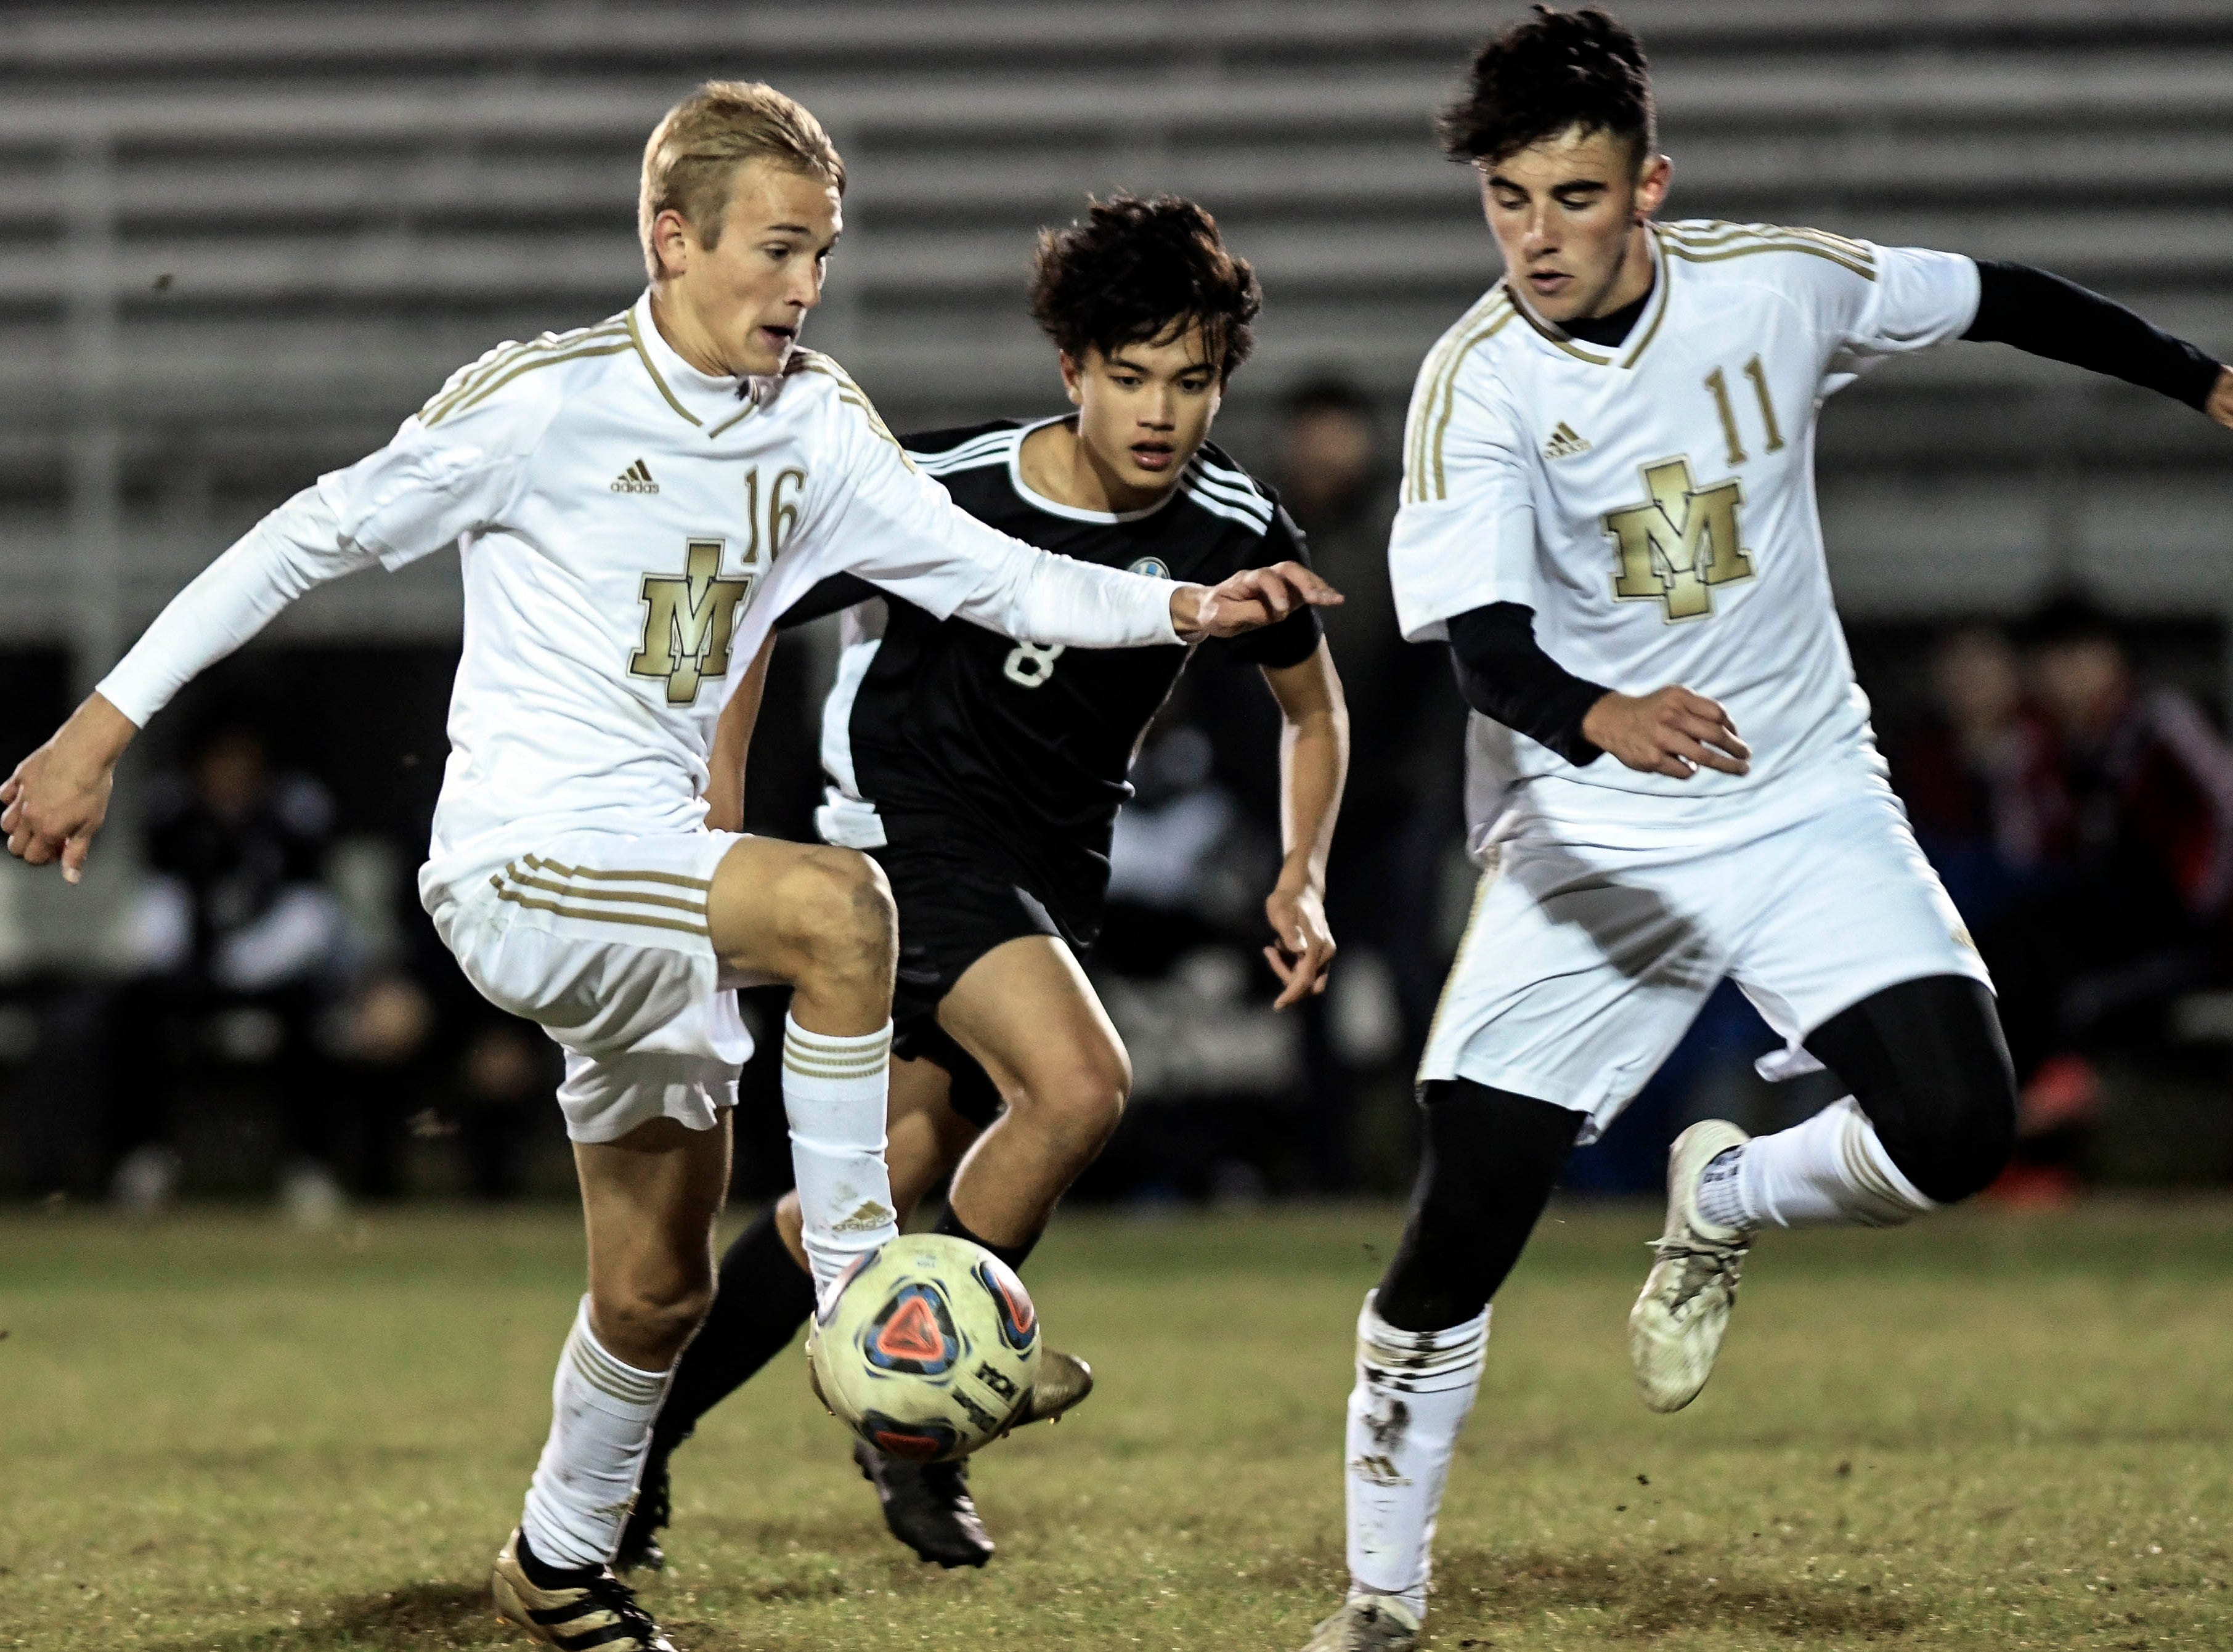 Kaleb Bechtol (16) and Andrew Sequeira (11) of Merritt Island keep the ball away from Andrew Inocencio of Rockledge during Wednesday's District 12, Class 3A semifinal at McLarty Stadium